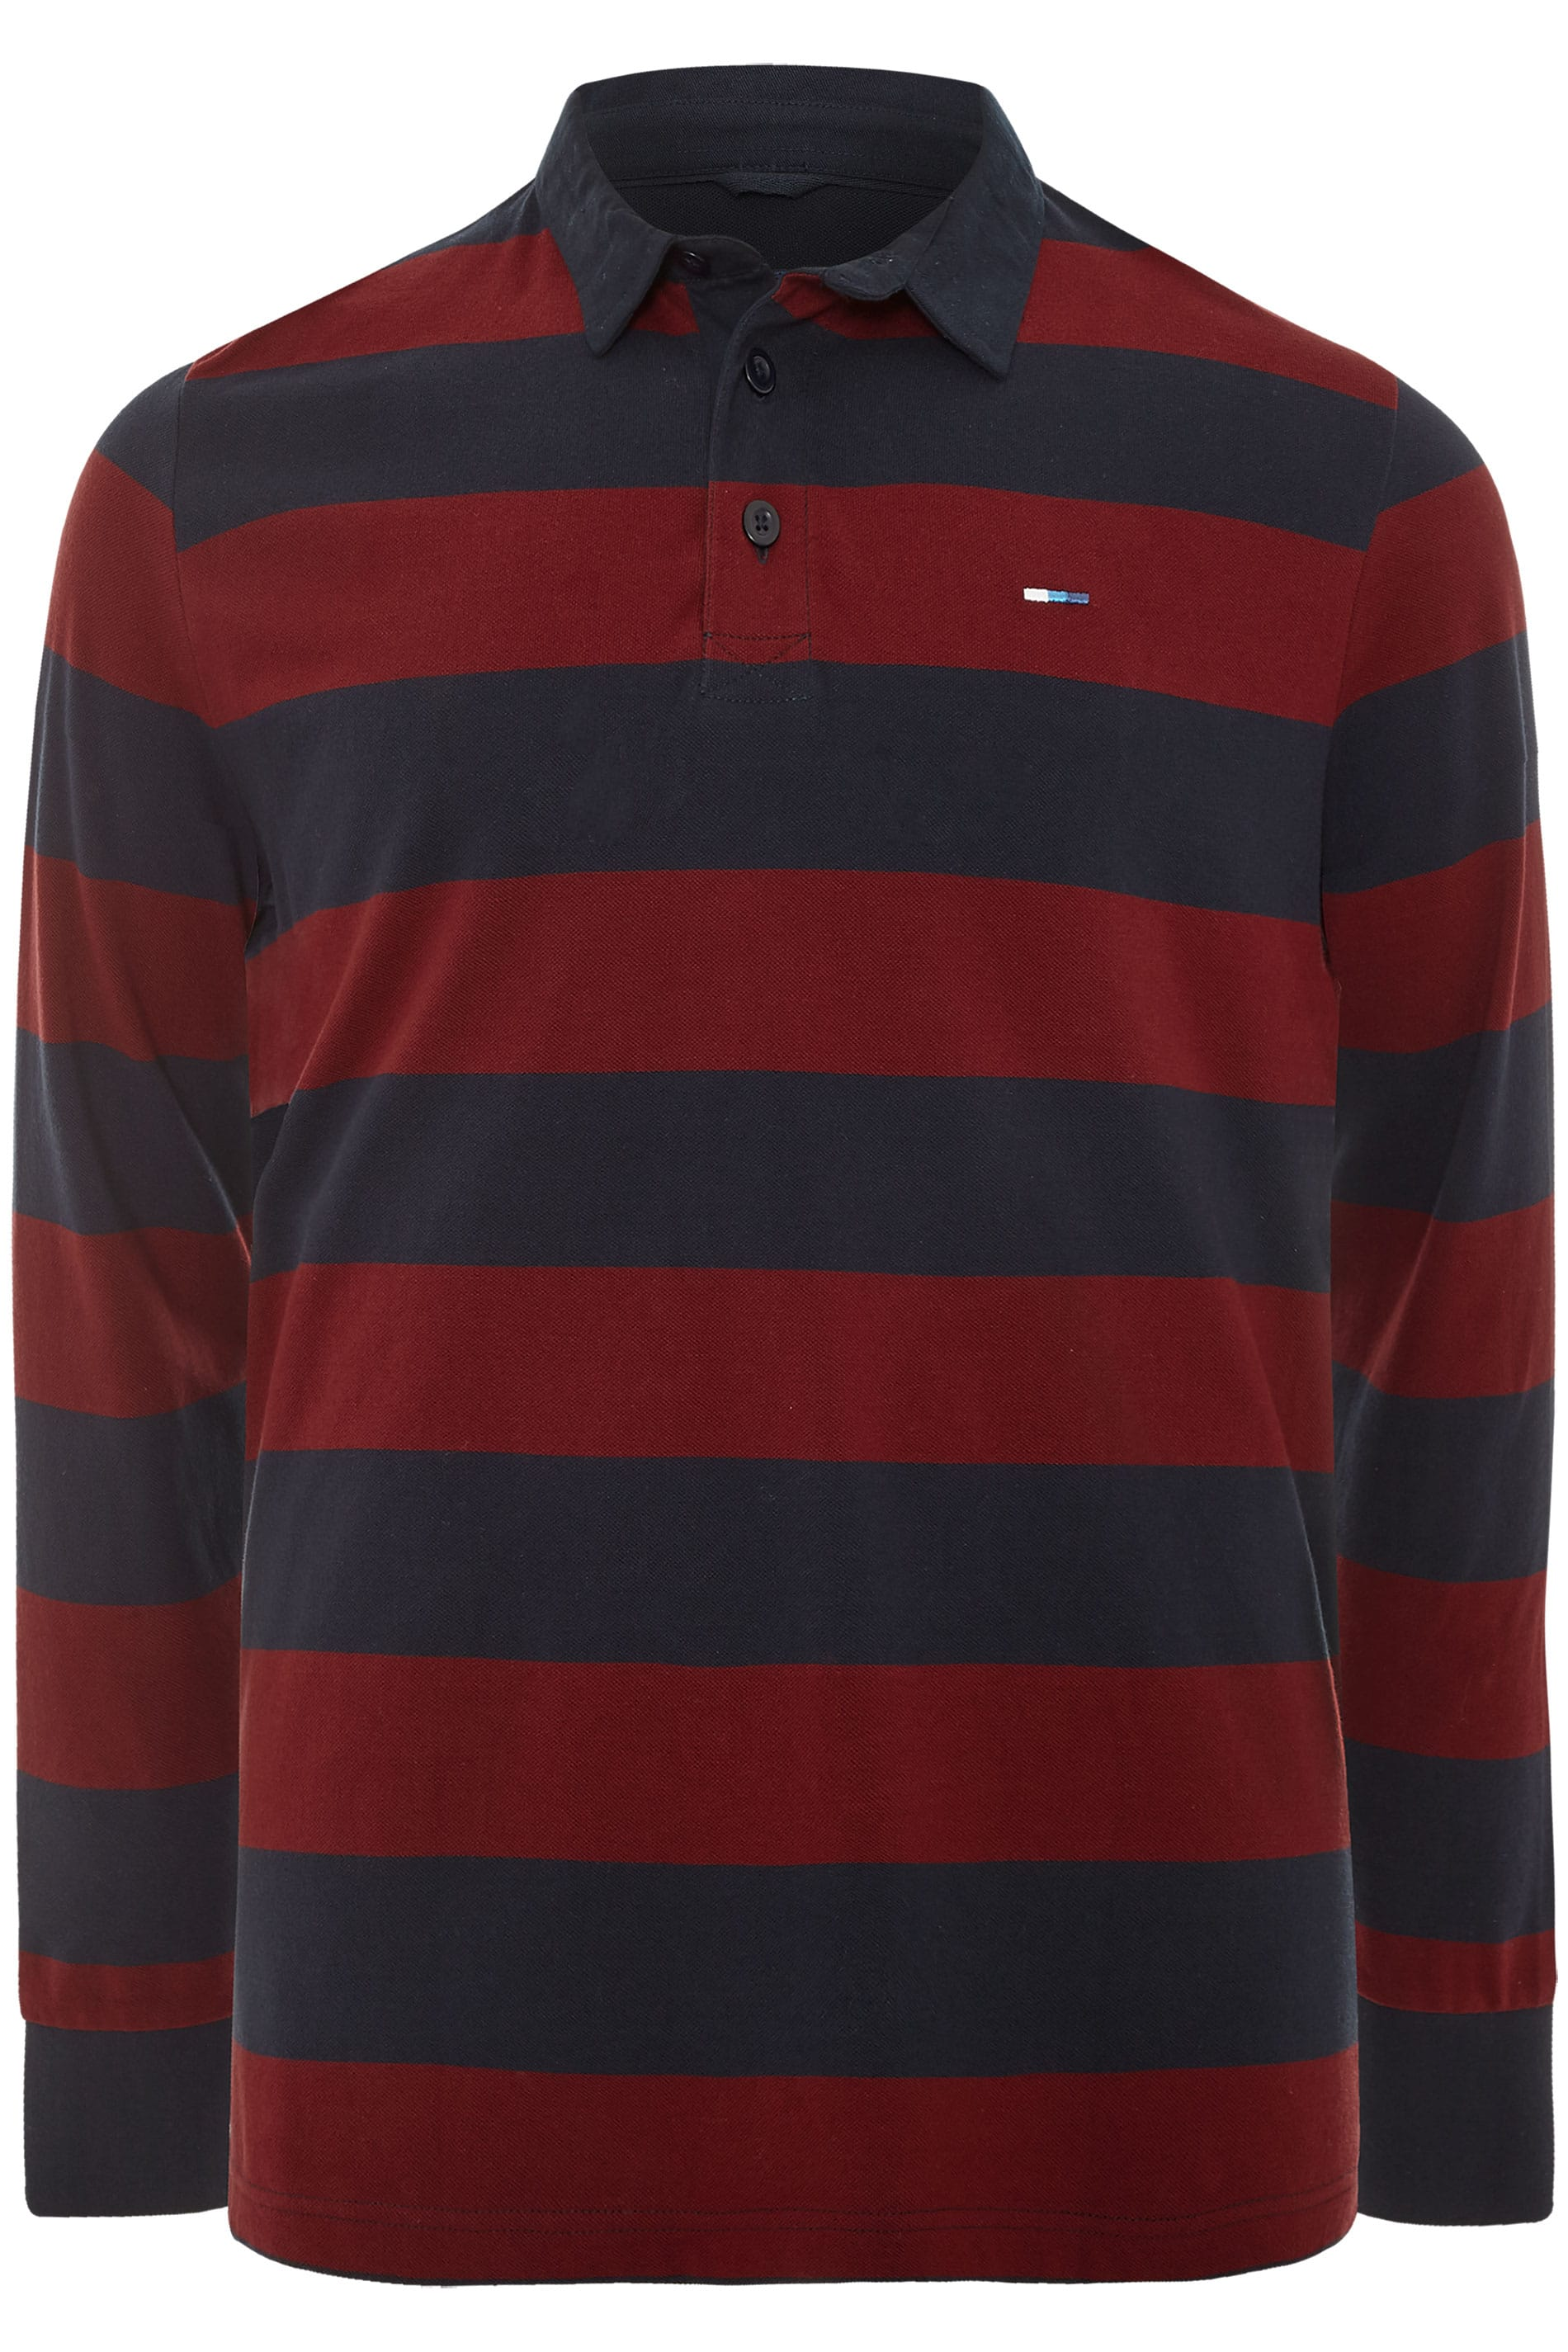 BadRhino Navy and Burgundy Stripe Polo Shirt